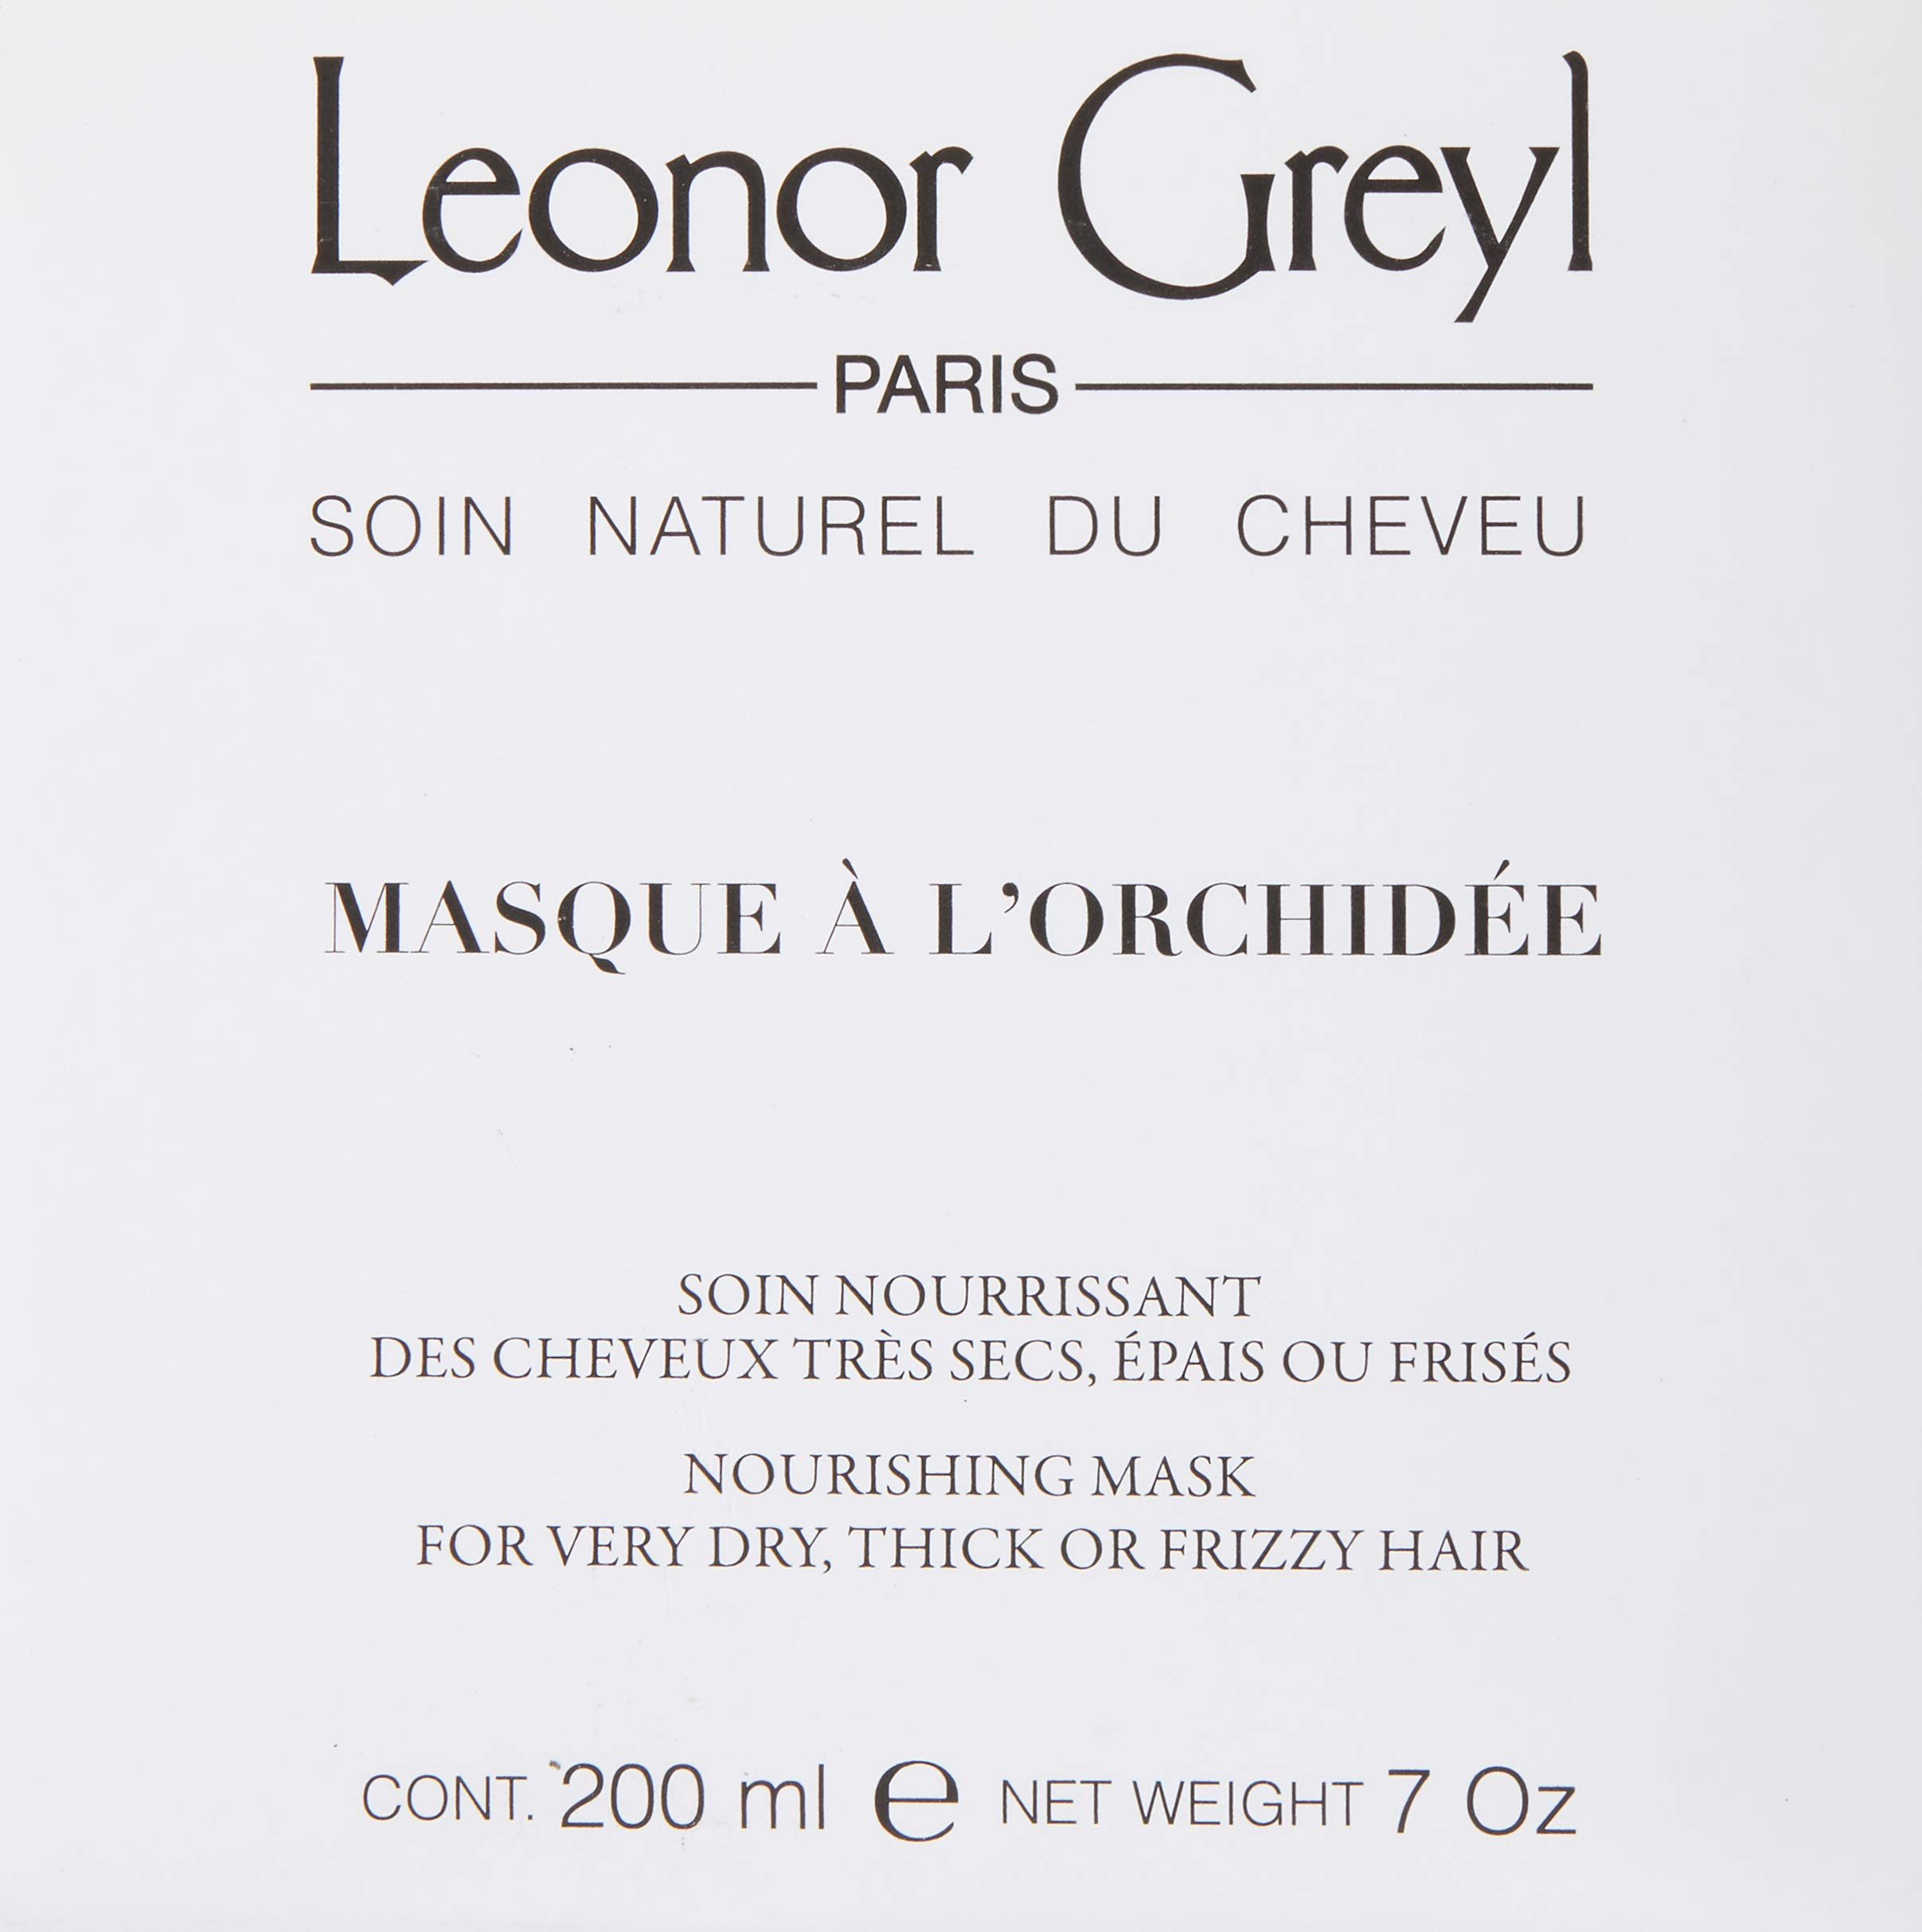 Leonor Greyl Paris Masque A L'Orchidee - Deep Conditioning Mask for Dry, Thick or Frizzy Hair, 7 oz. by Leonor Greyl Paris (Image #3)